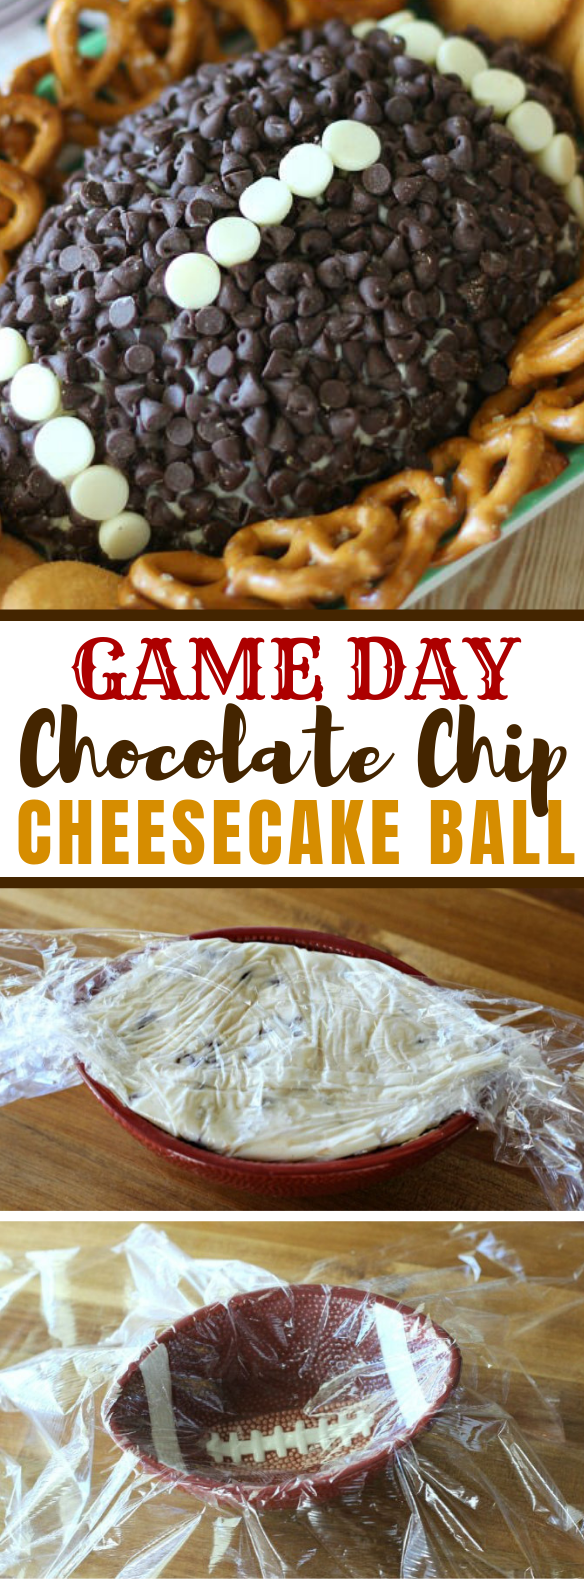 GAME DAY CHOCOLATE CHIP CHEESECAKE BALL #desserts #appetizers